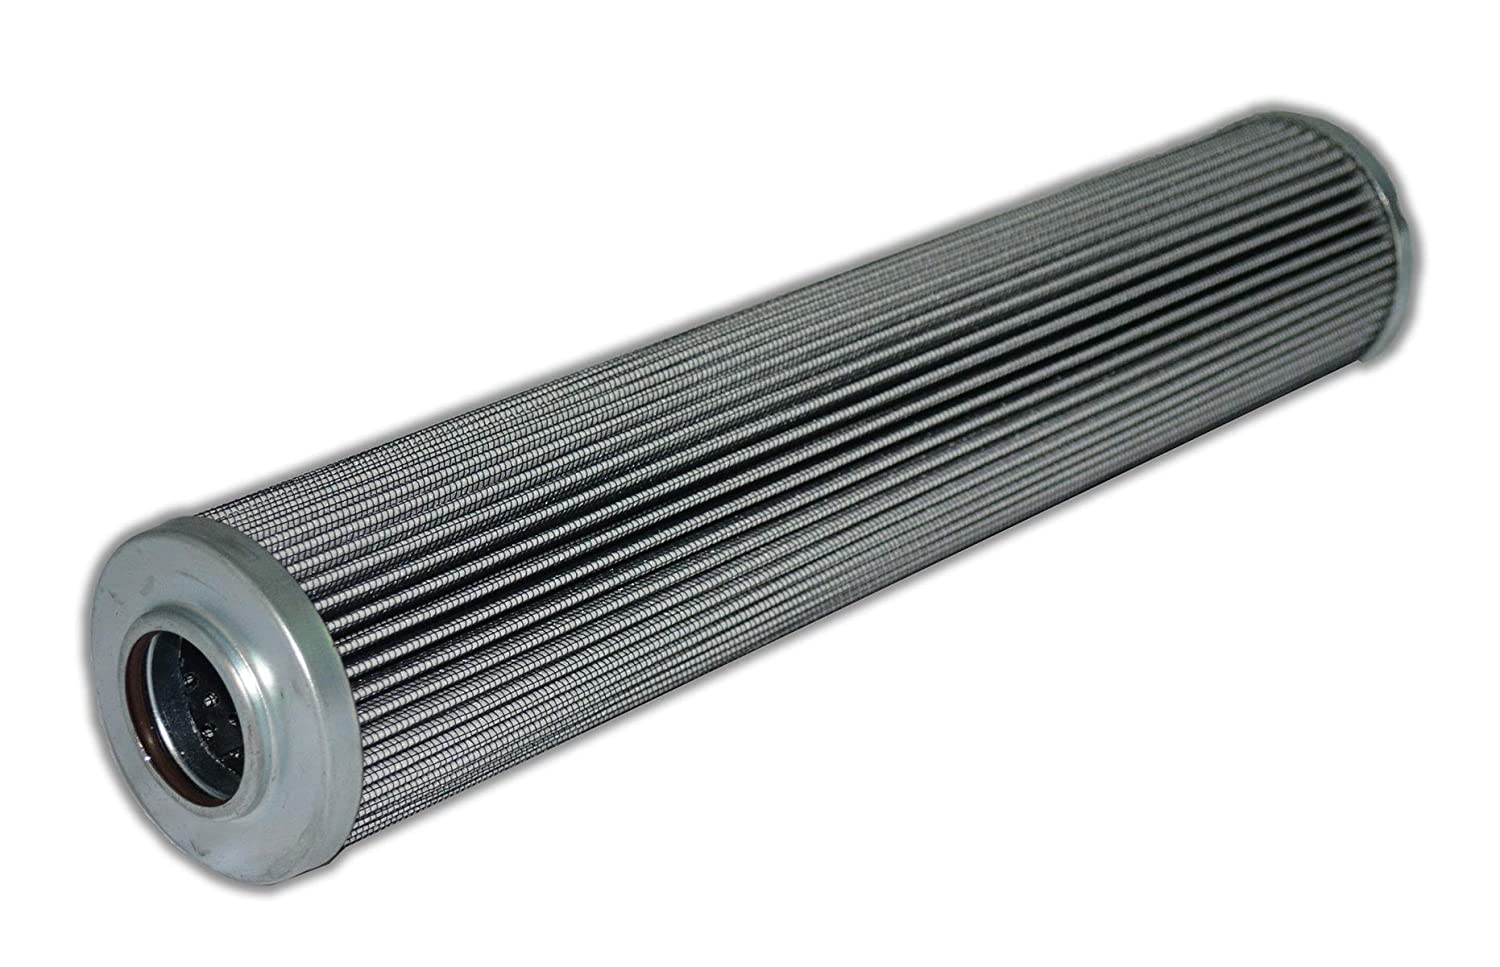 HYDAC//HYCON 01250492 Heavy Duty Replacement Hydraulic Filter Element from Big Filter